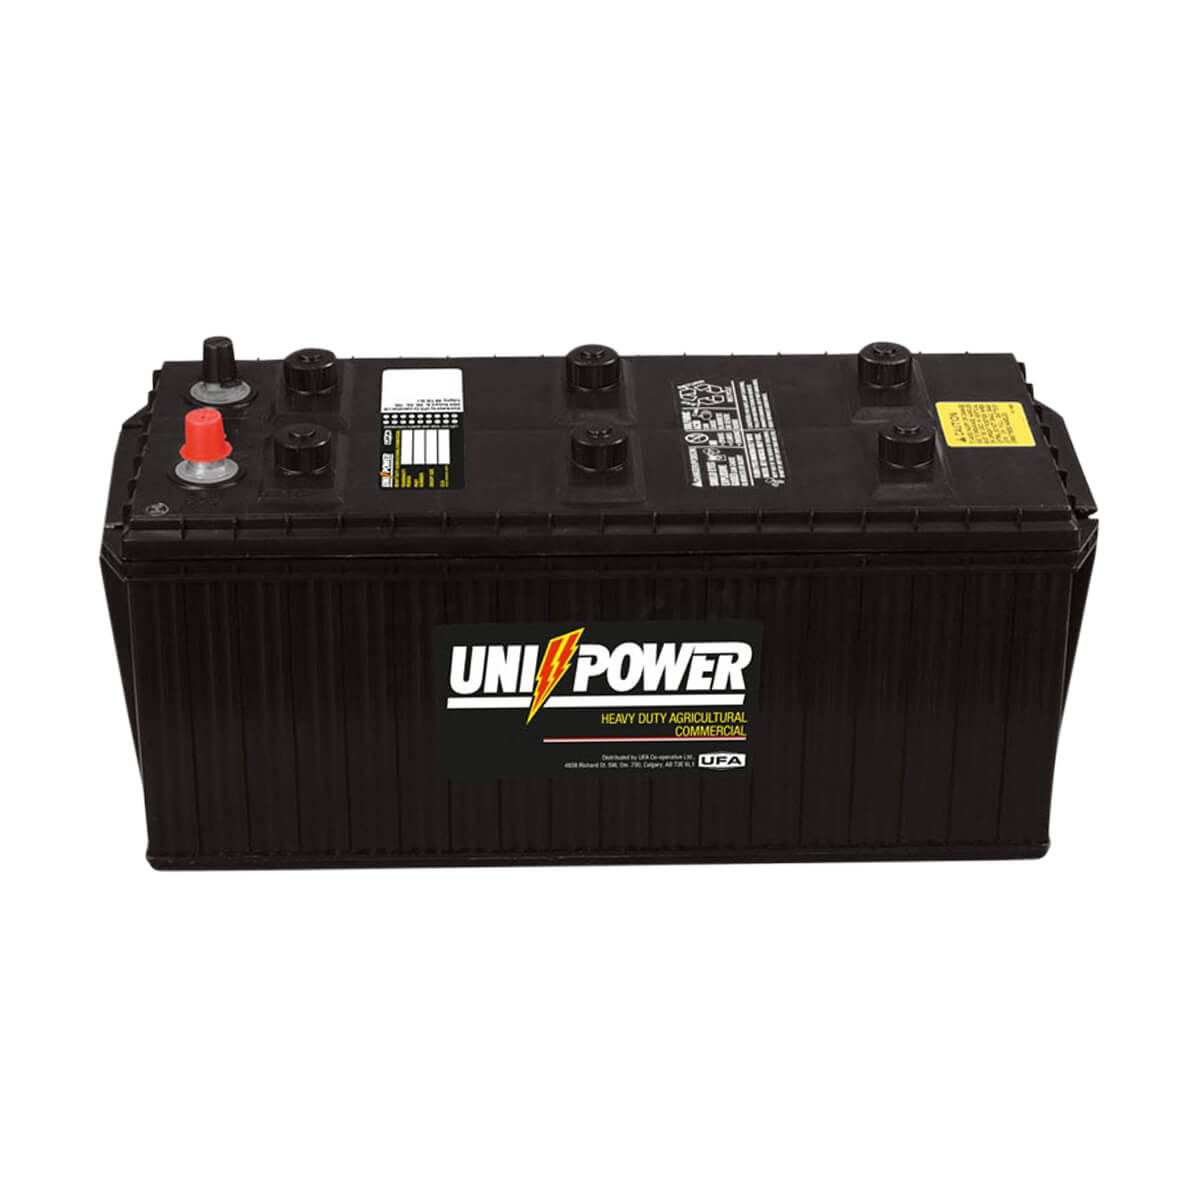 Heavy Duty Commercial 6 Volt Battery - 7-4P